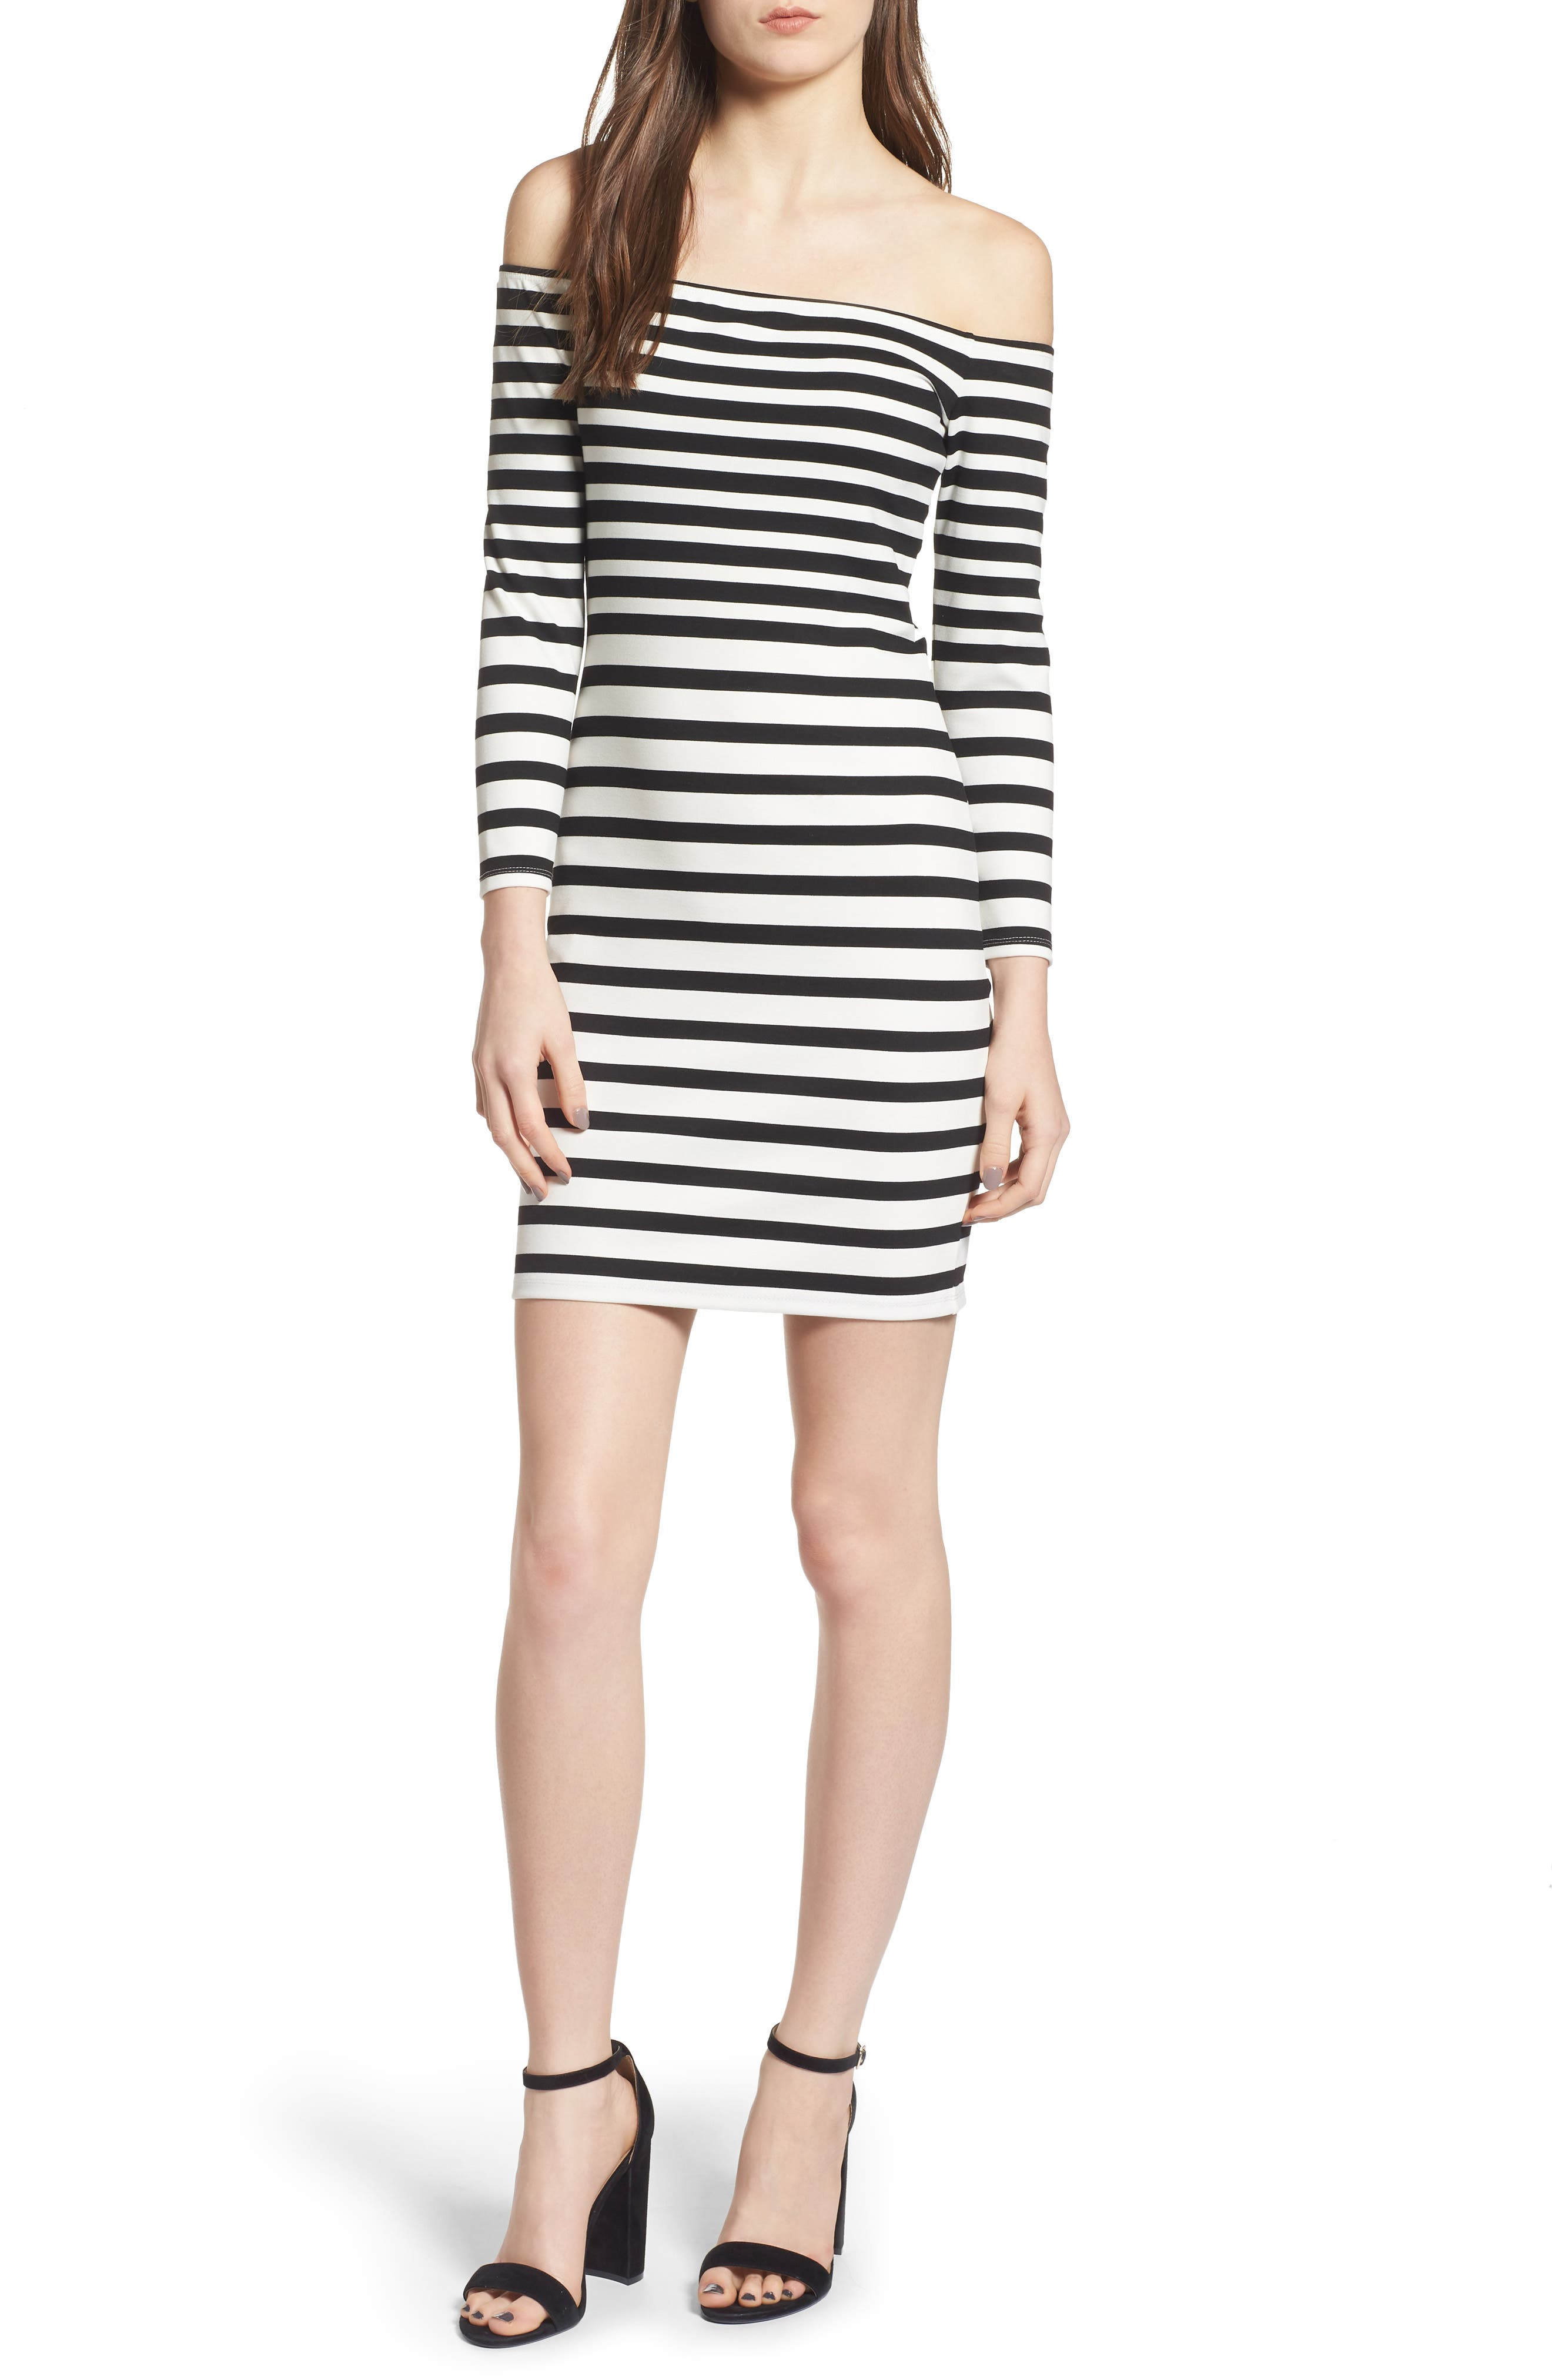 cupcakes and cashmere Fira Off the Shoulder Body-Con Dress